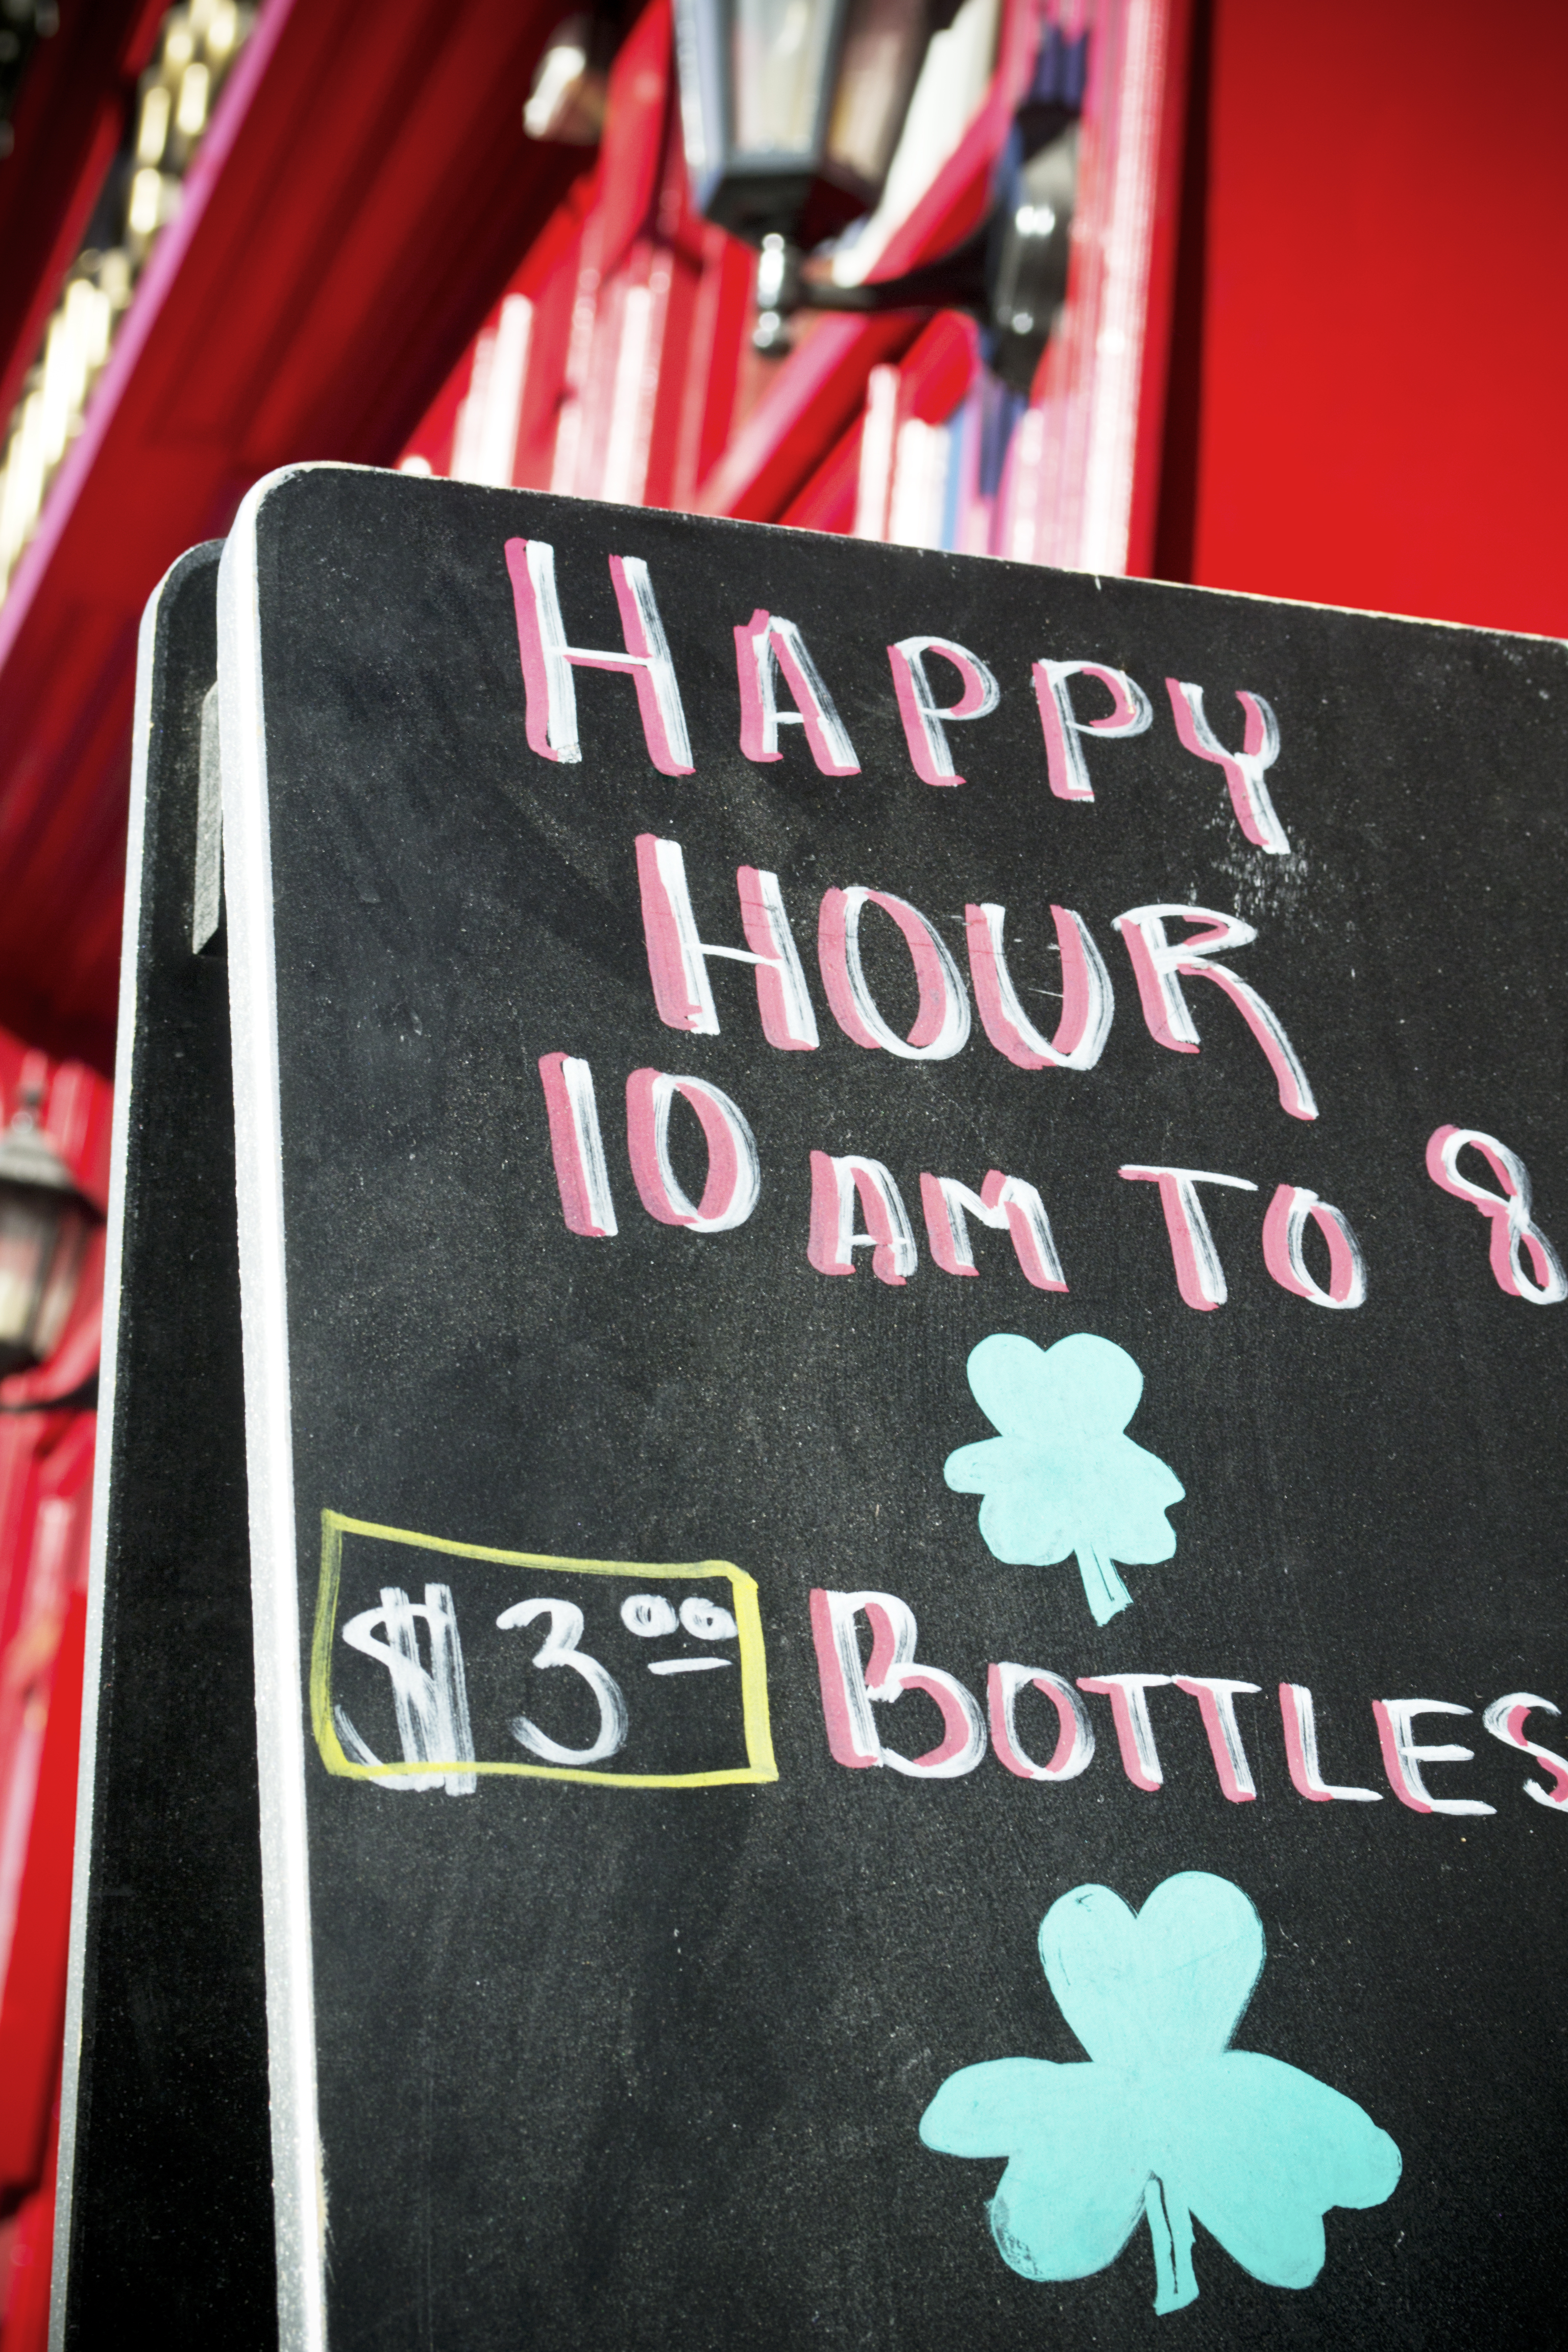 The debate over happy hour in Illinois continues.